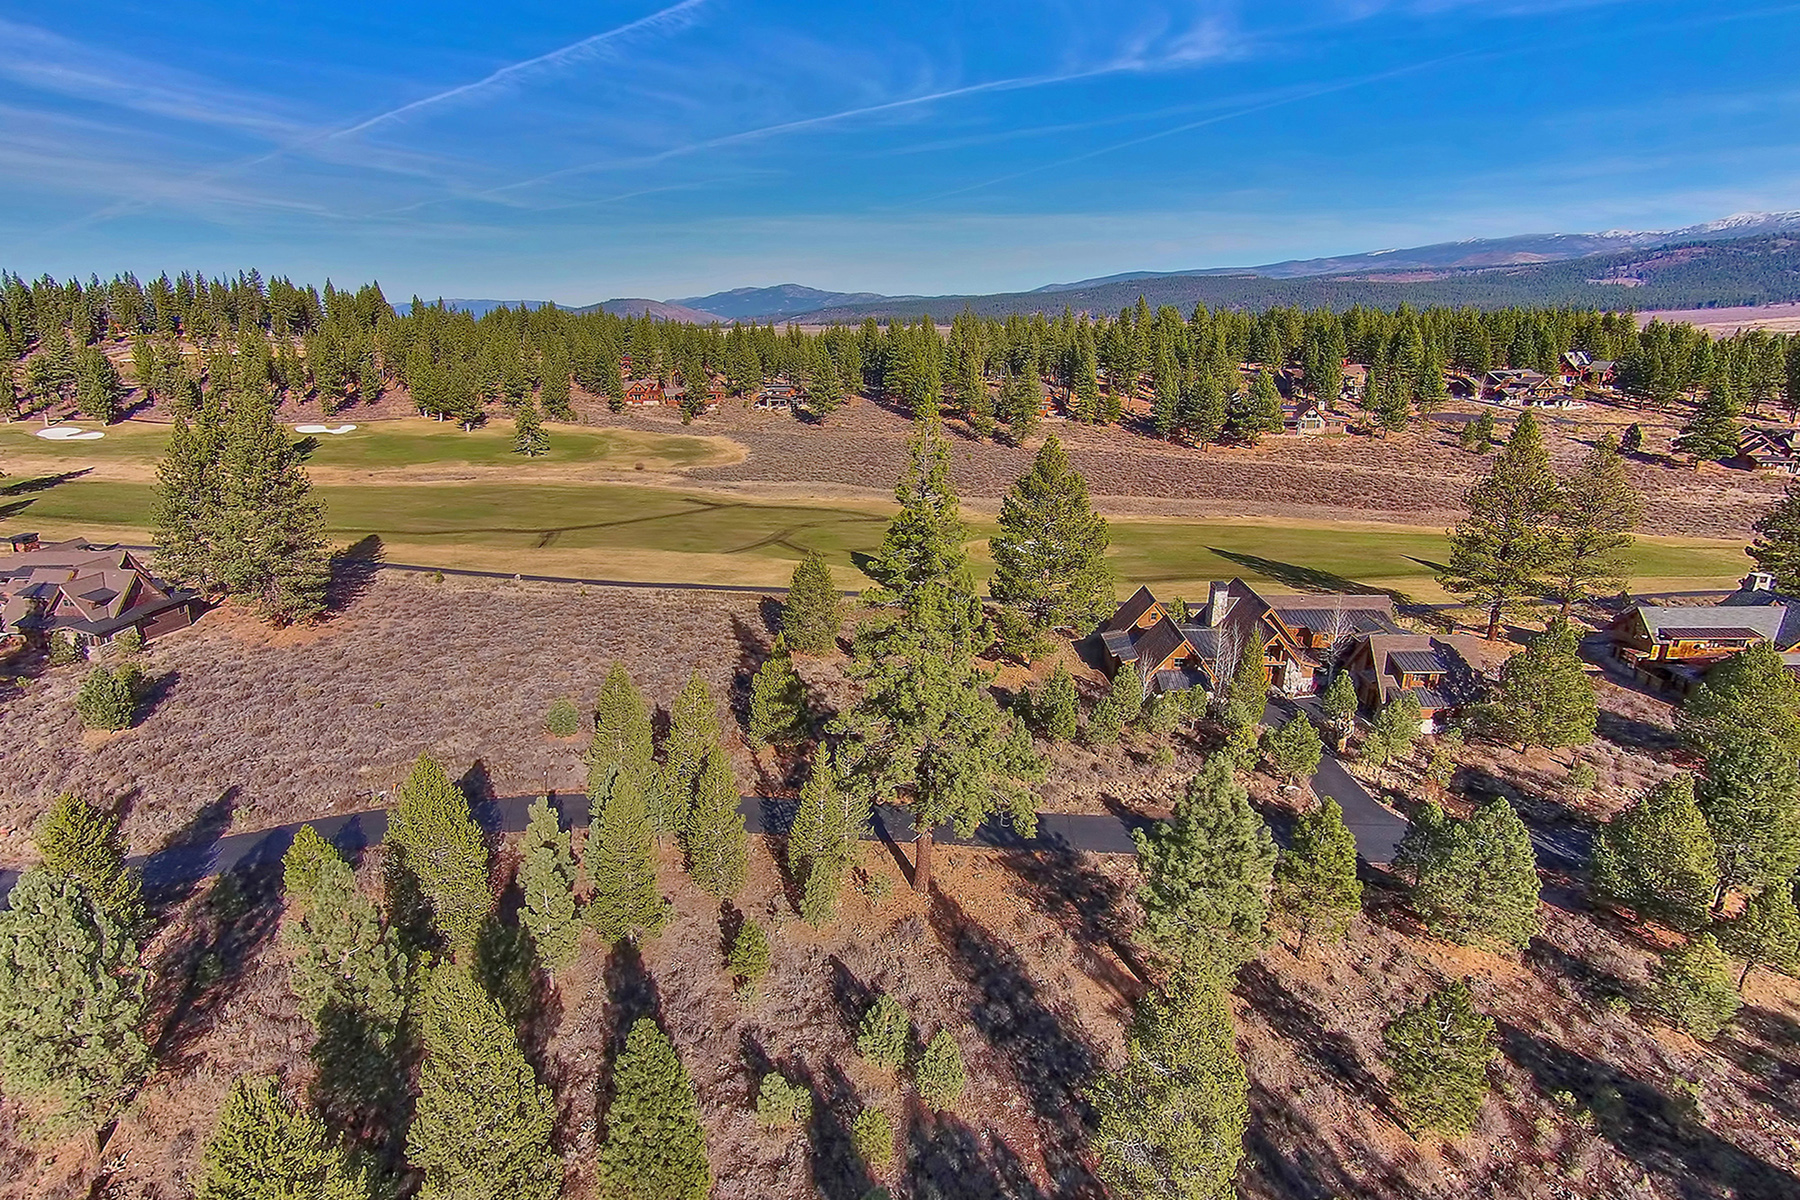 Additional photo for property listing at 10247 Dick Barter 10247 Dick Barter Lot 262 Truckee, California 96161 Estados Unidos